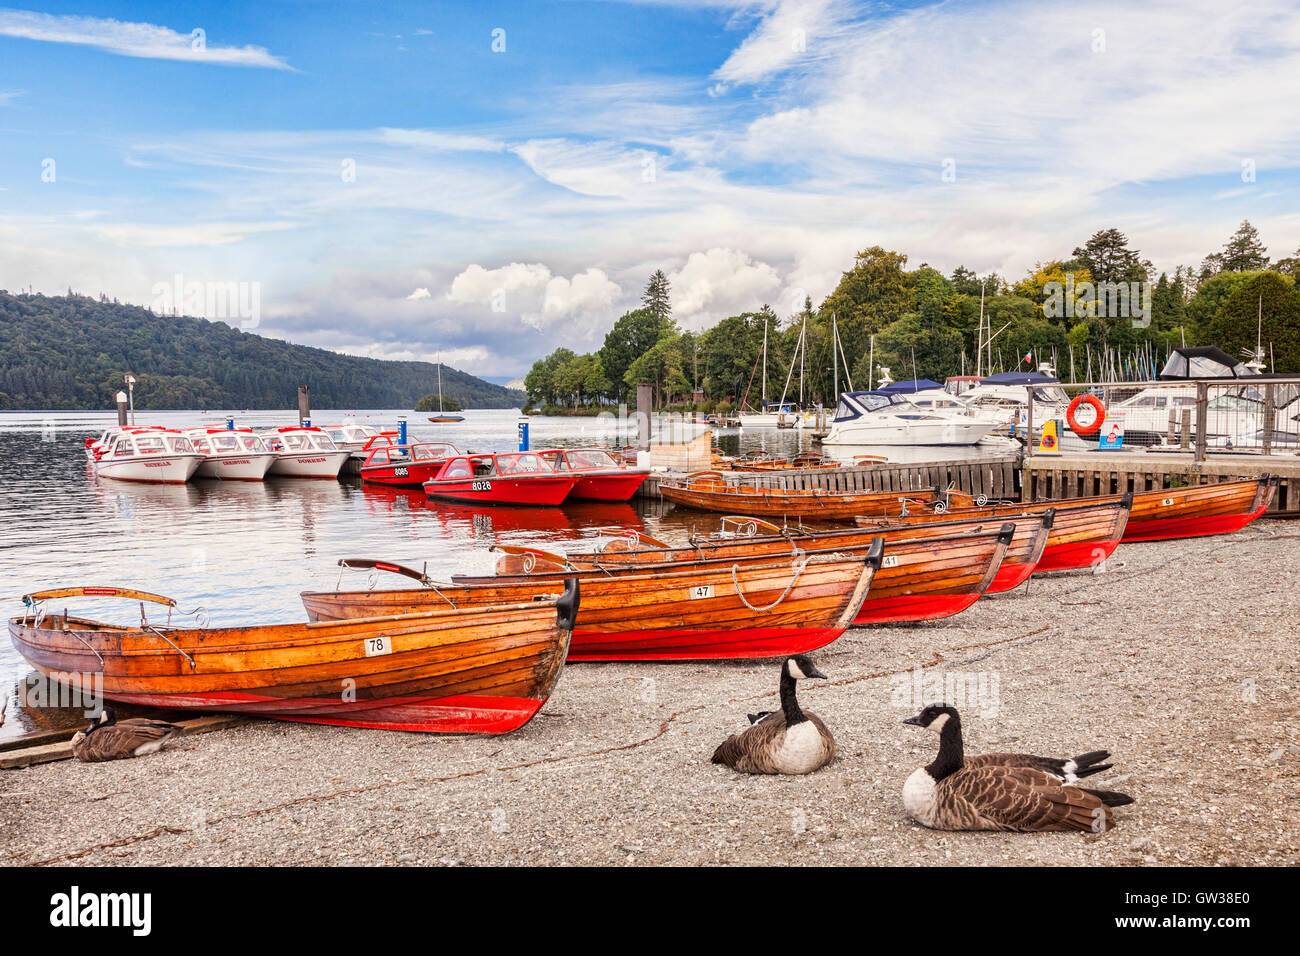 Boats for hire on the shore of Lake Windermere, Lake District National Park, Cumbria, England, UK - Stock Image